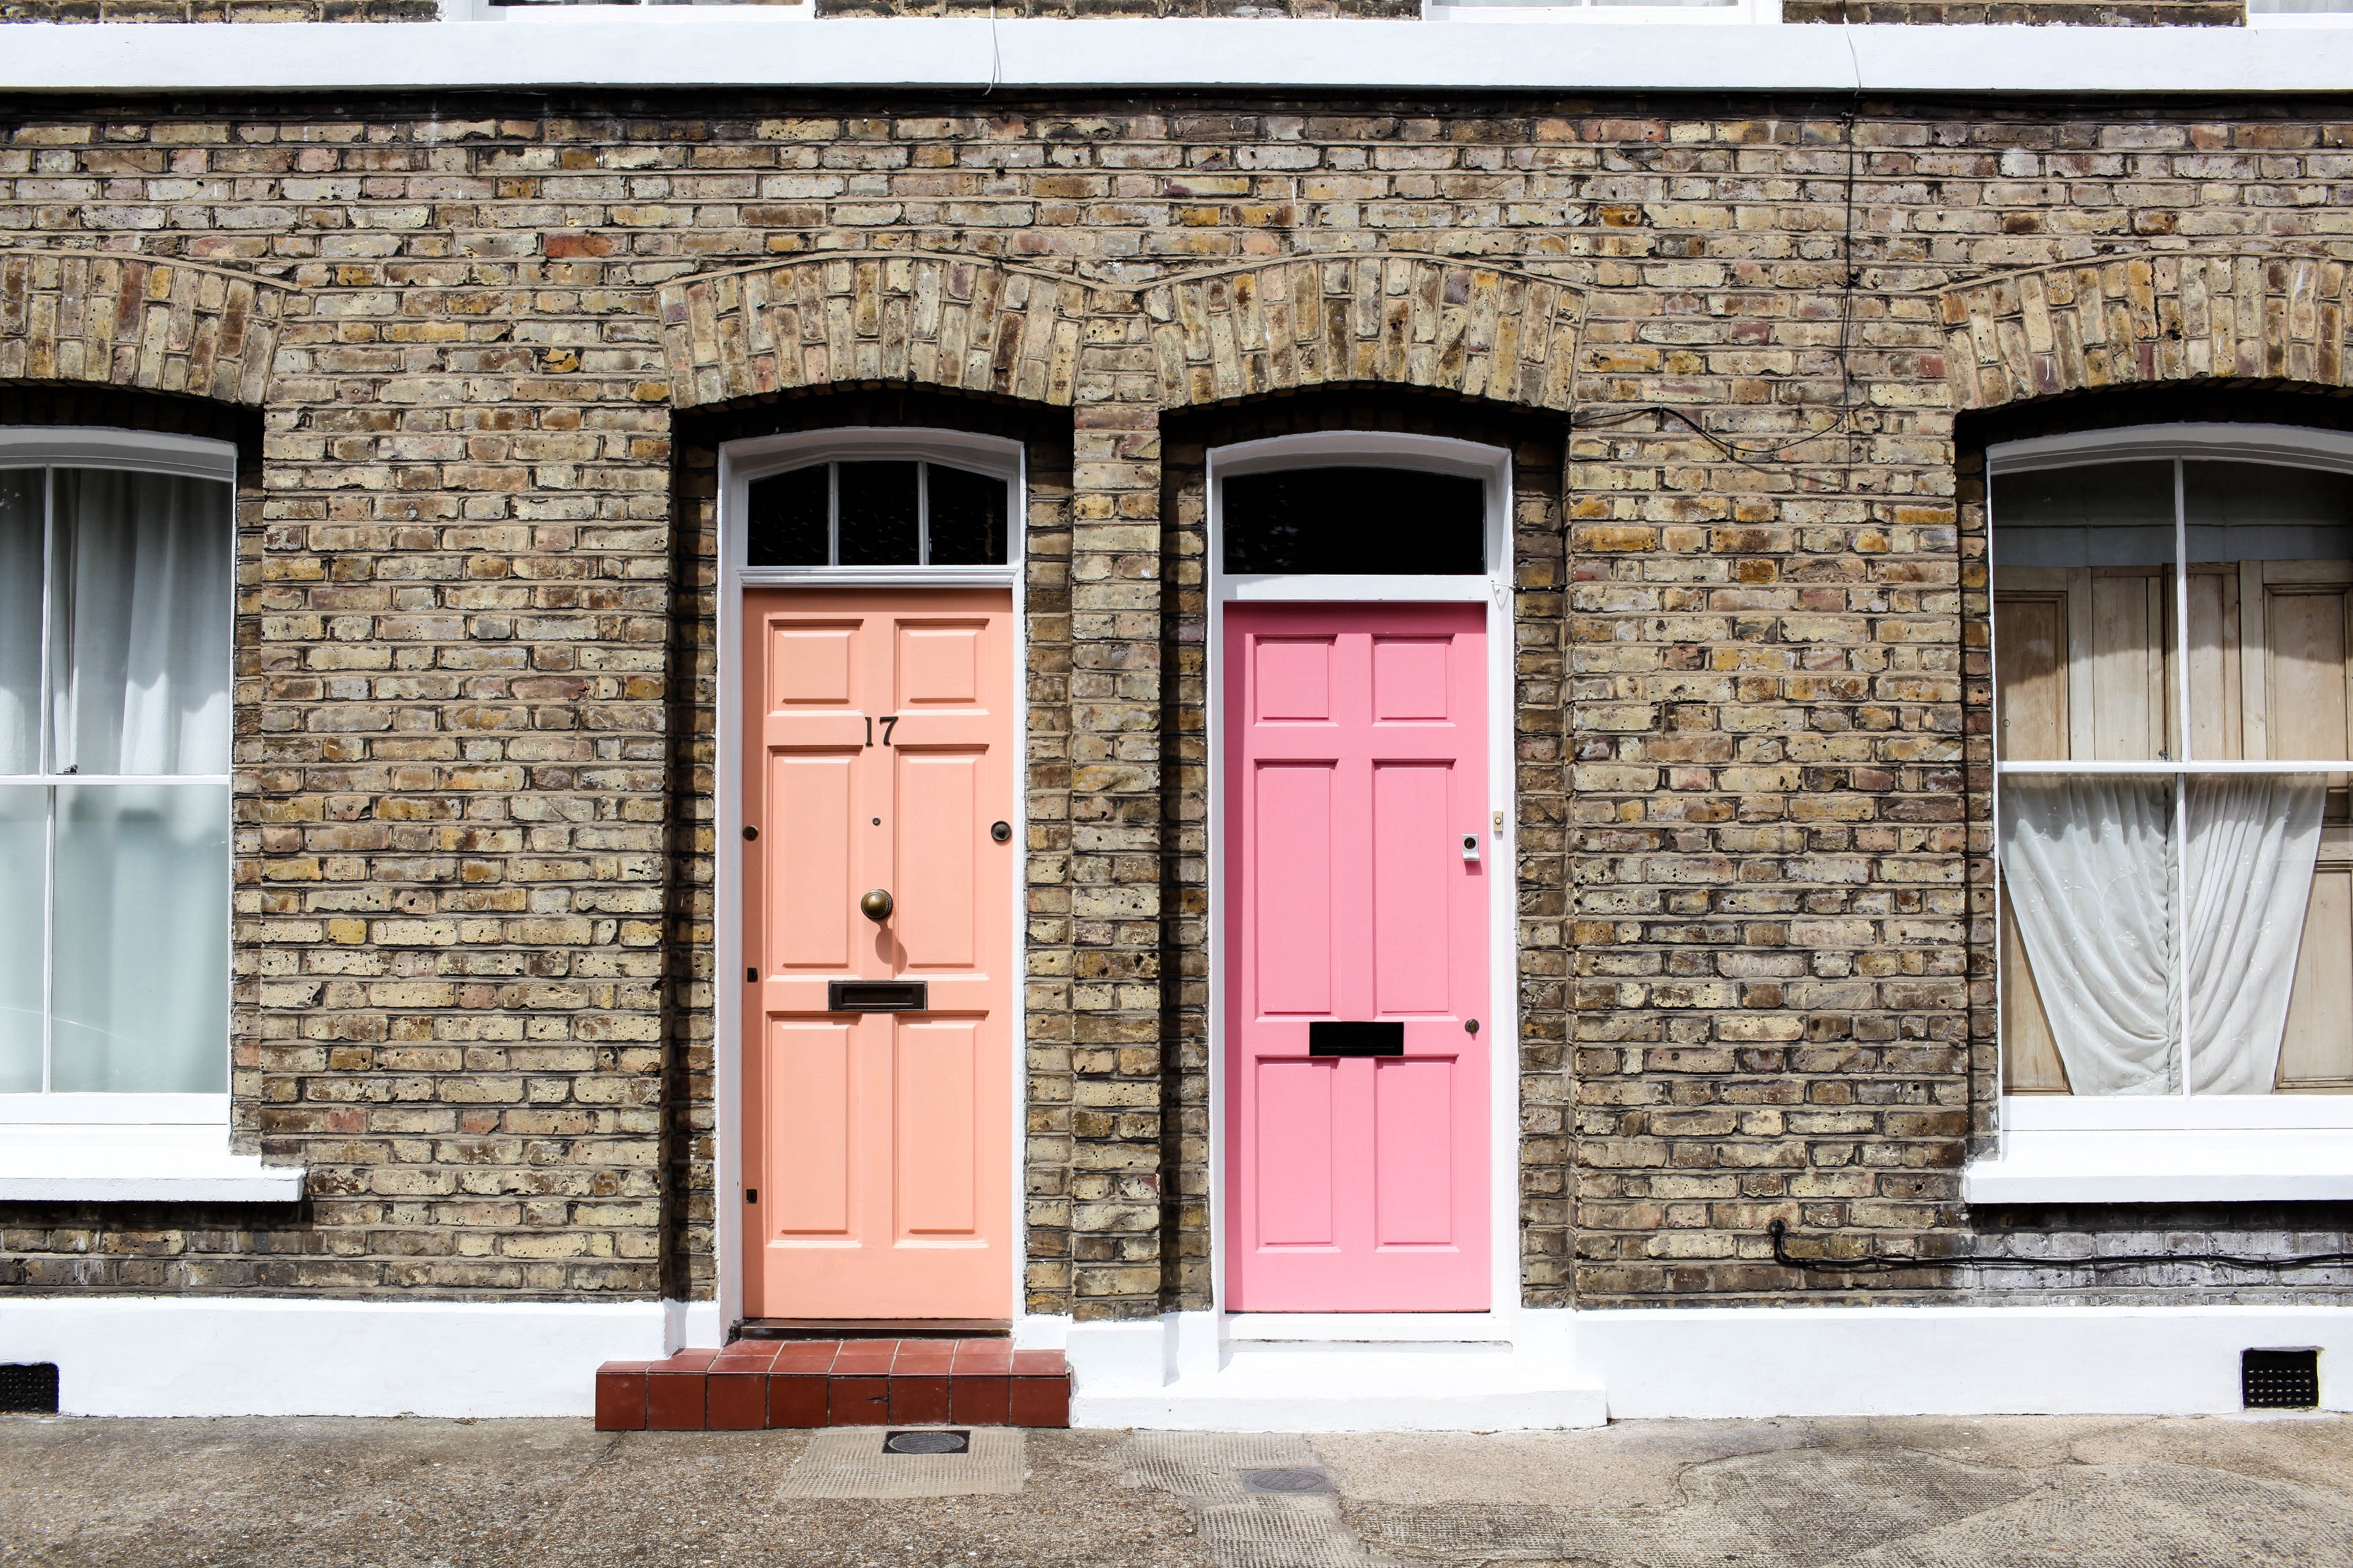 Two doors taken at Columbia Rd. One is beige and the other one is light pink.